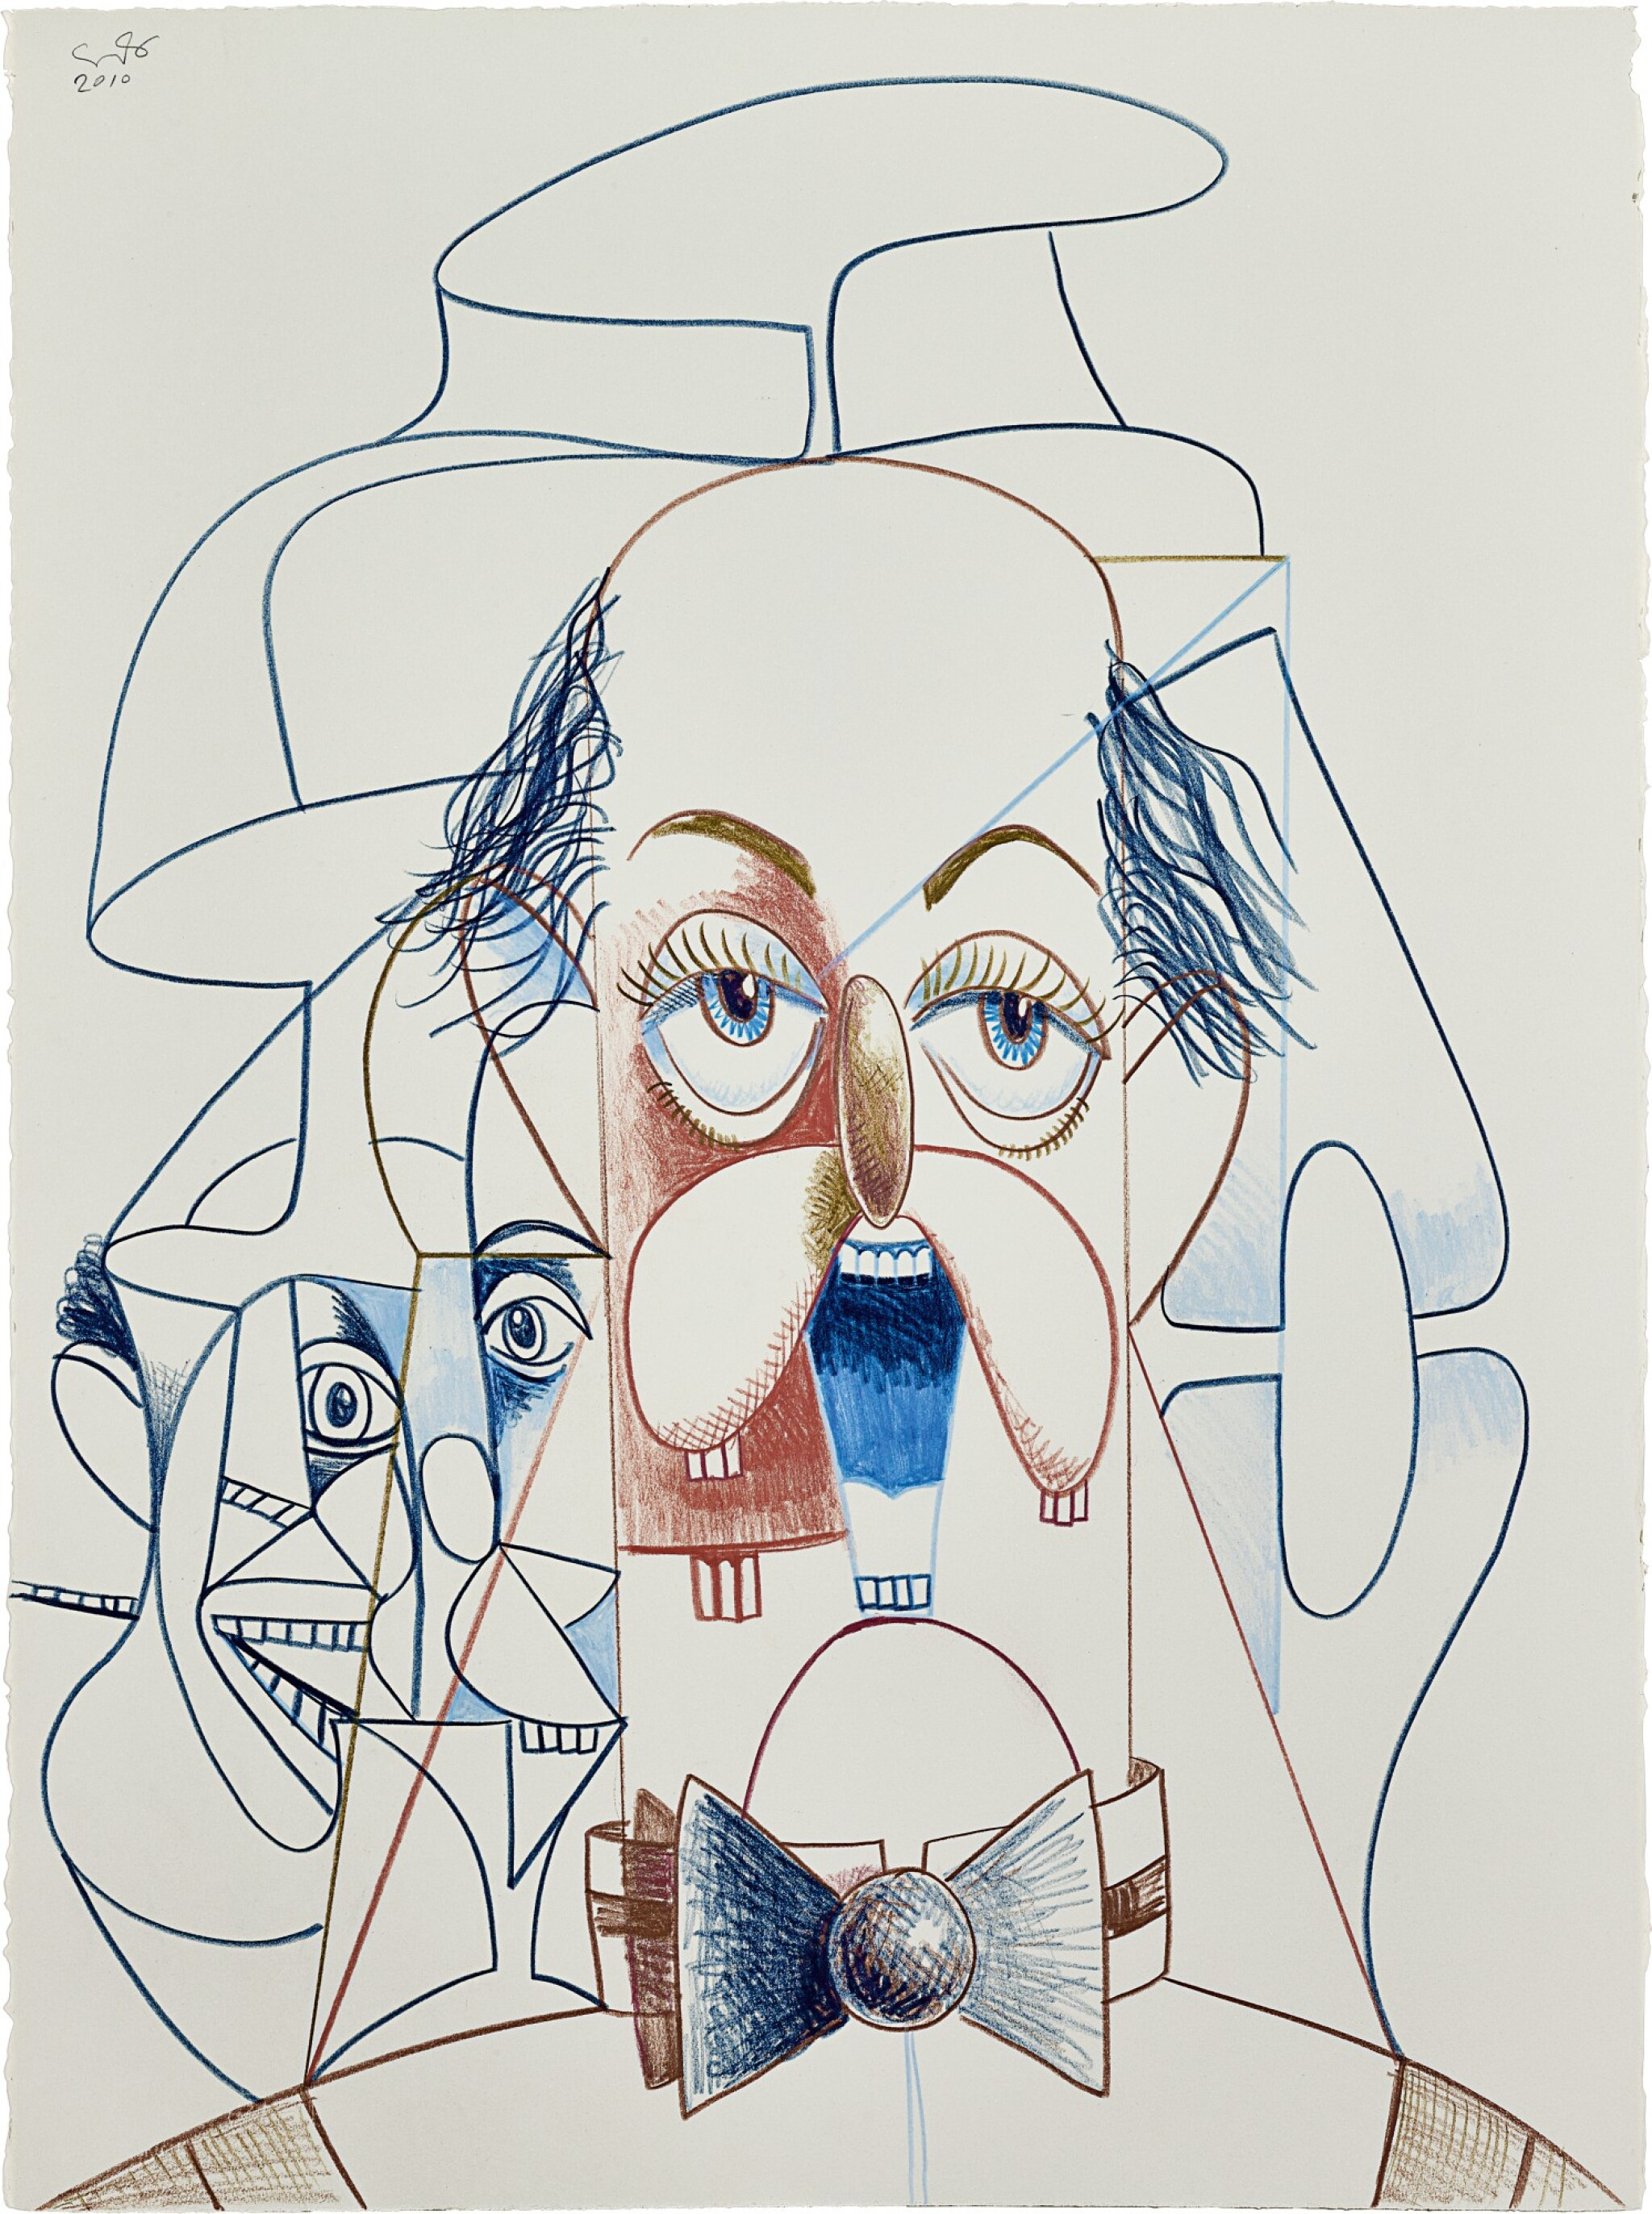 View full screen - View 1 of Lot 518. George Condo 喬治・康多   Untitled (Banker)  無題(銀行家).